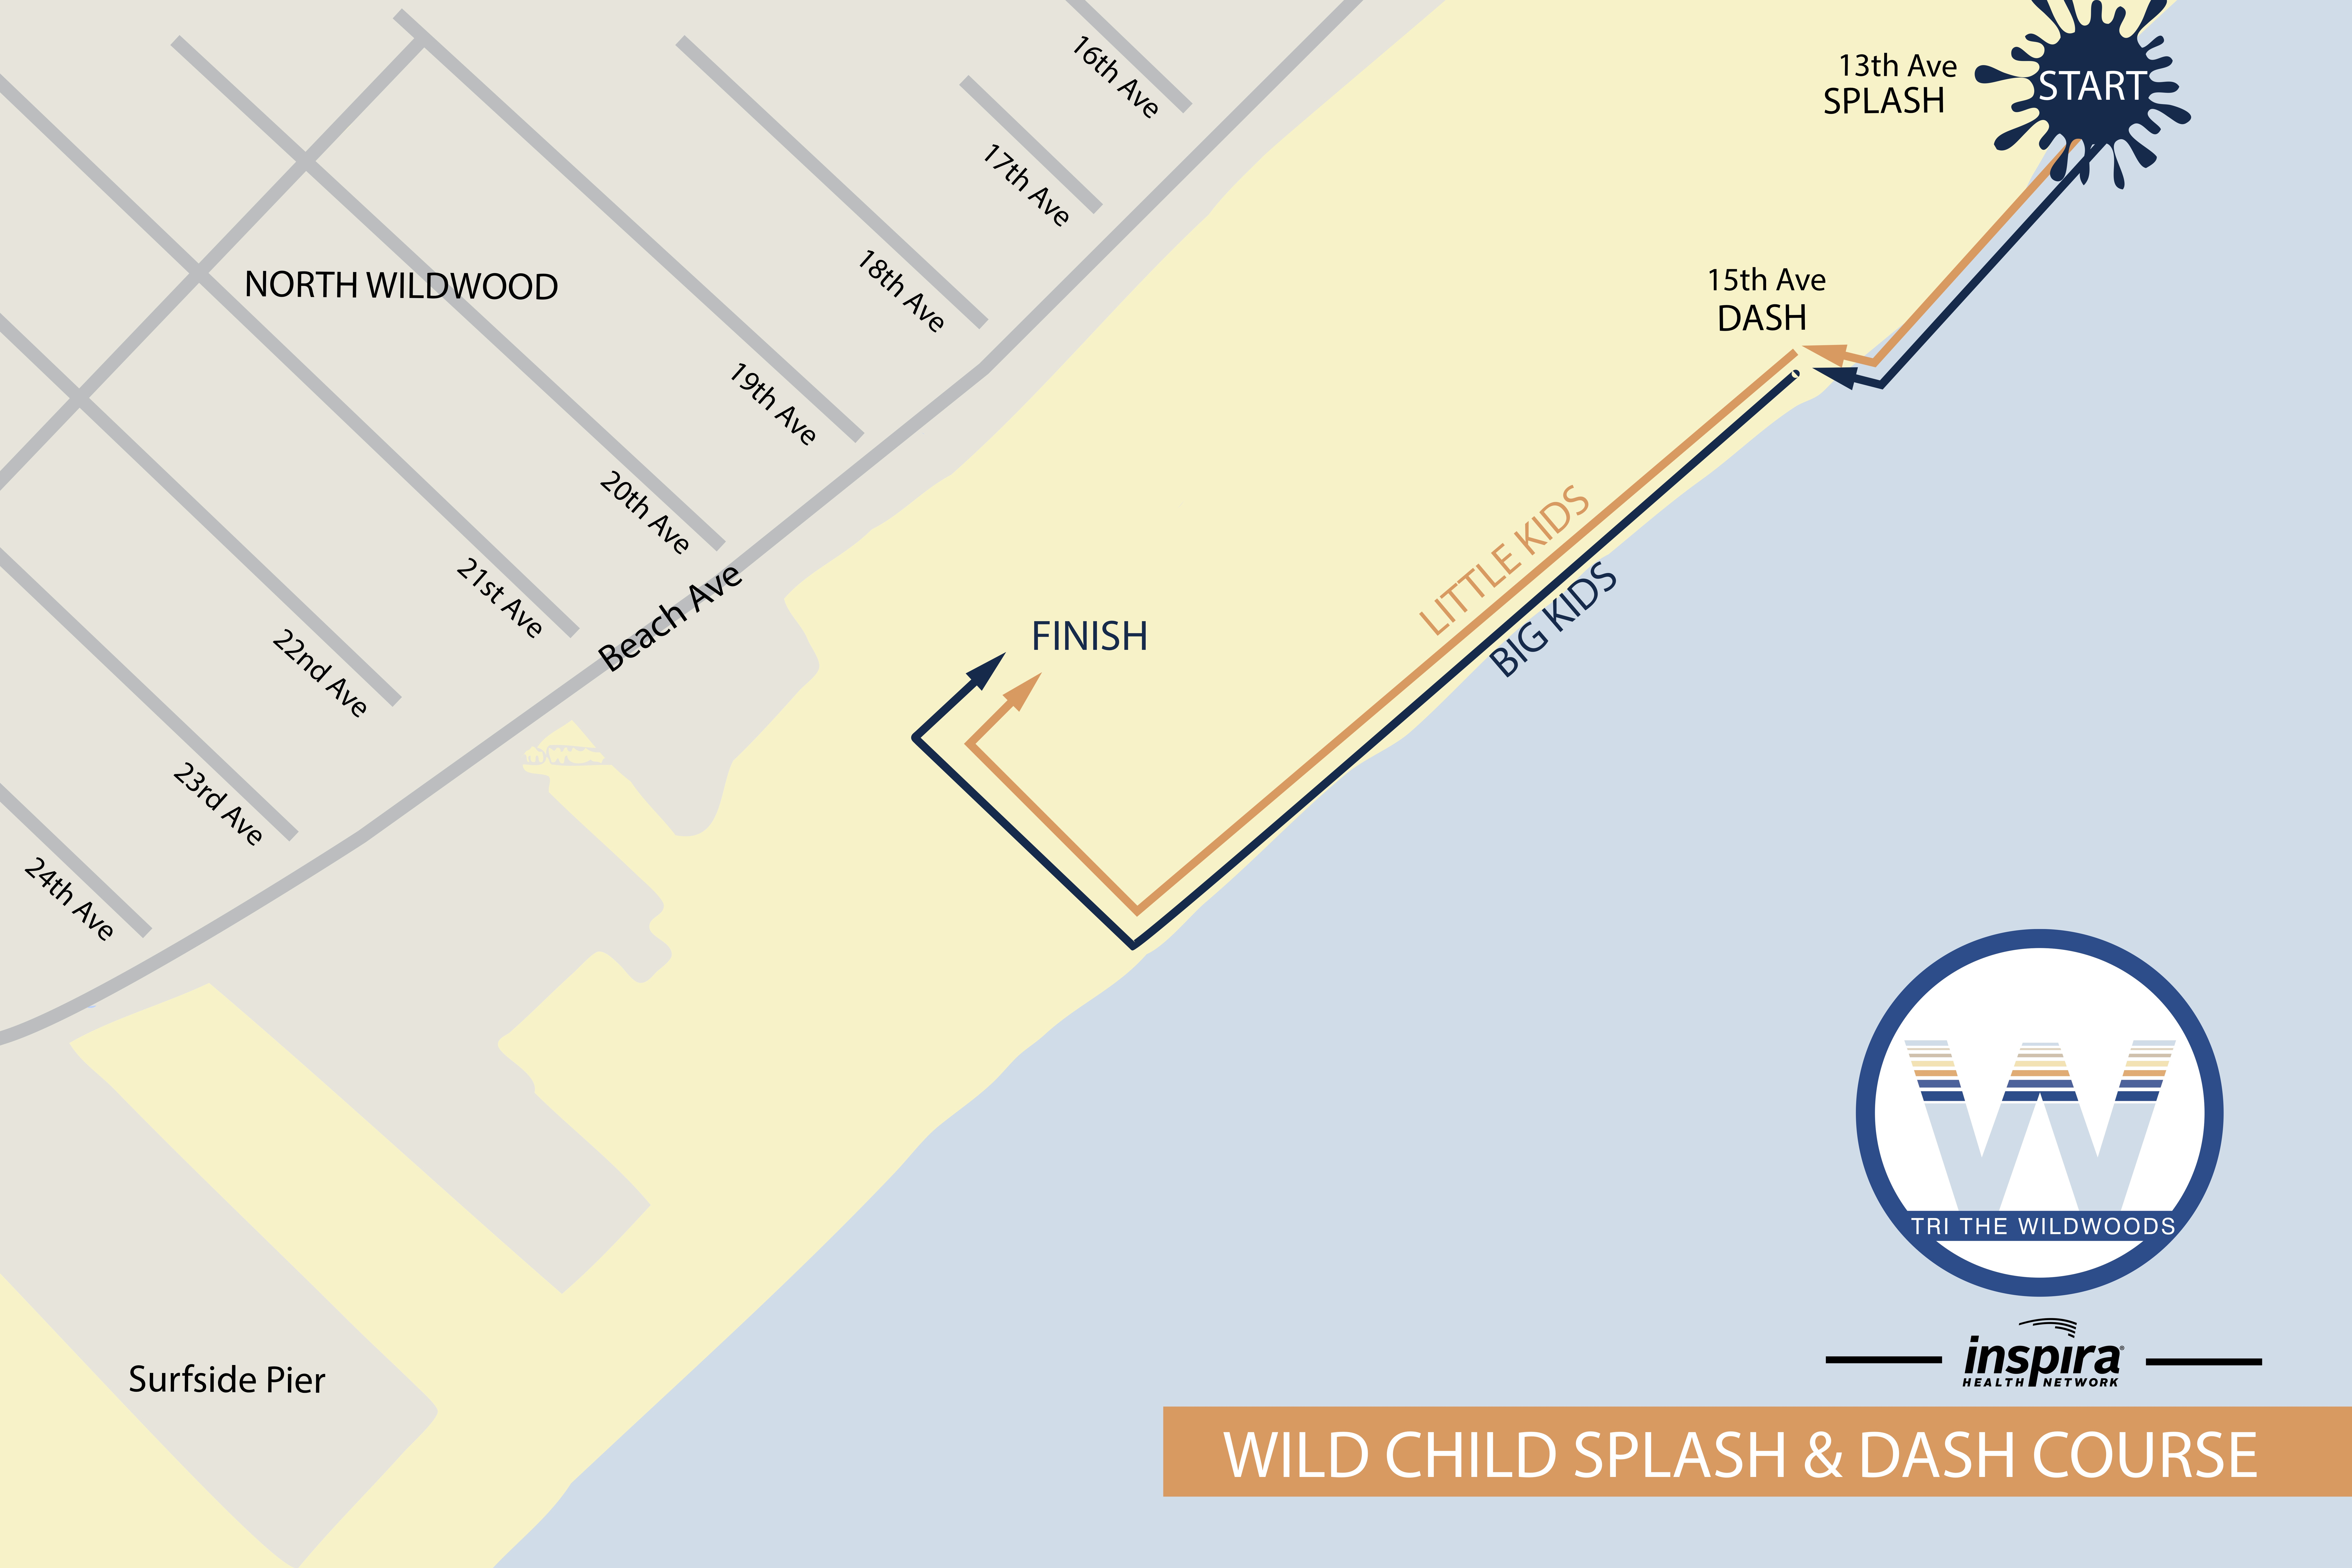 Wild Child Splash & Dash Course